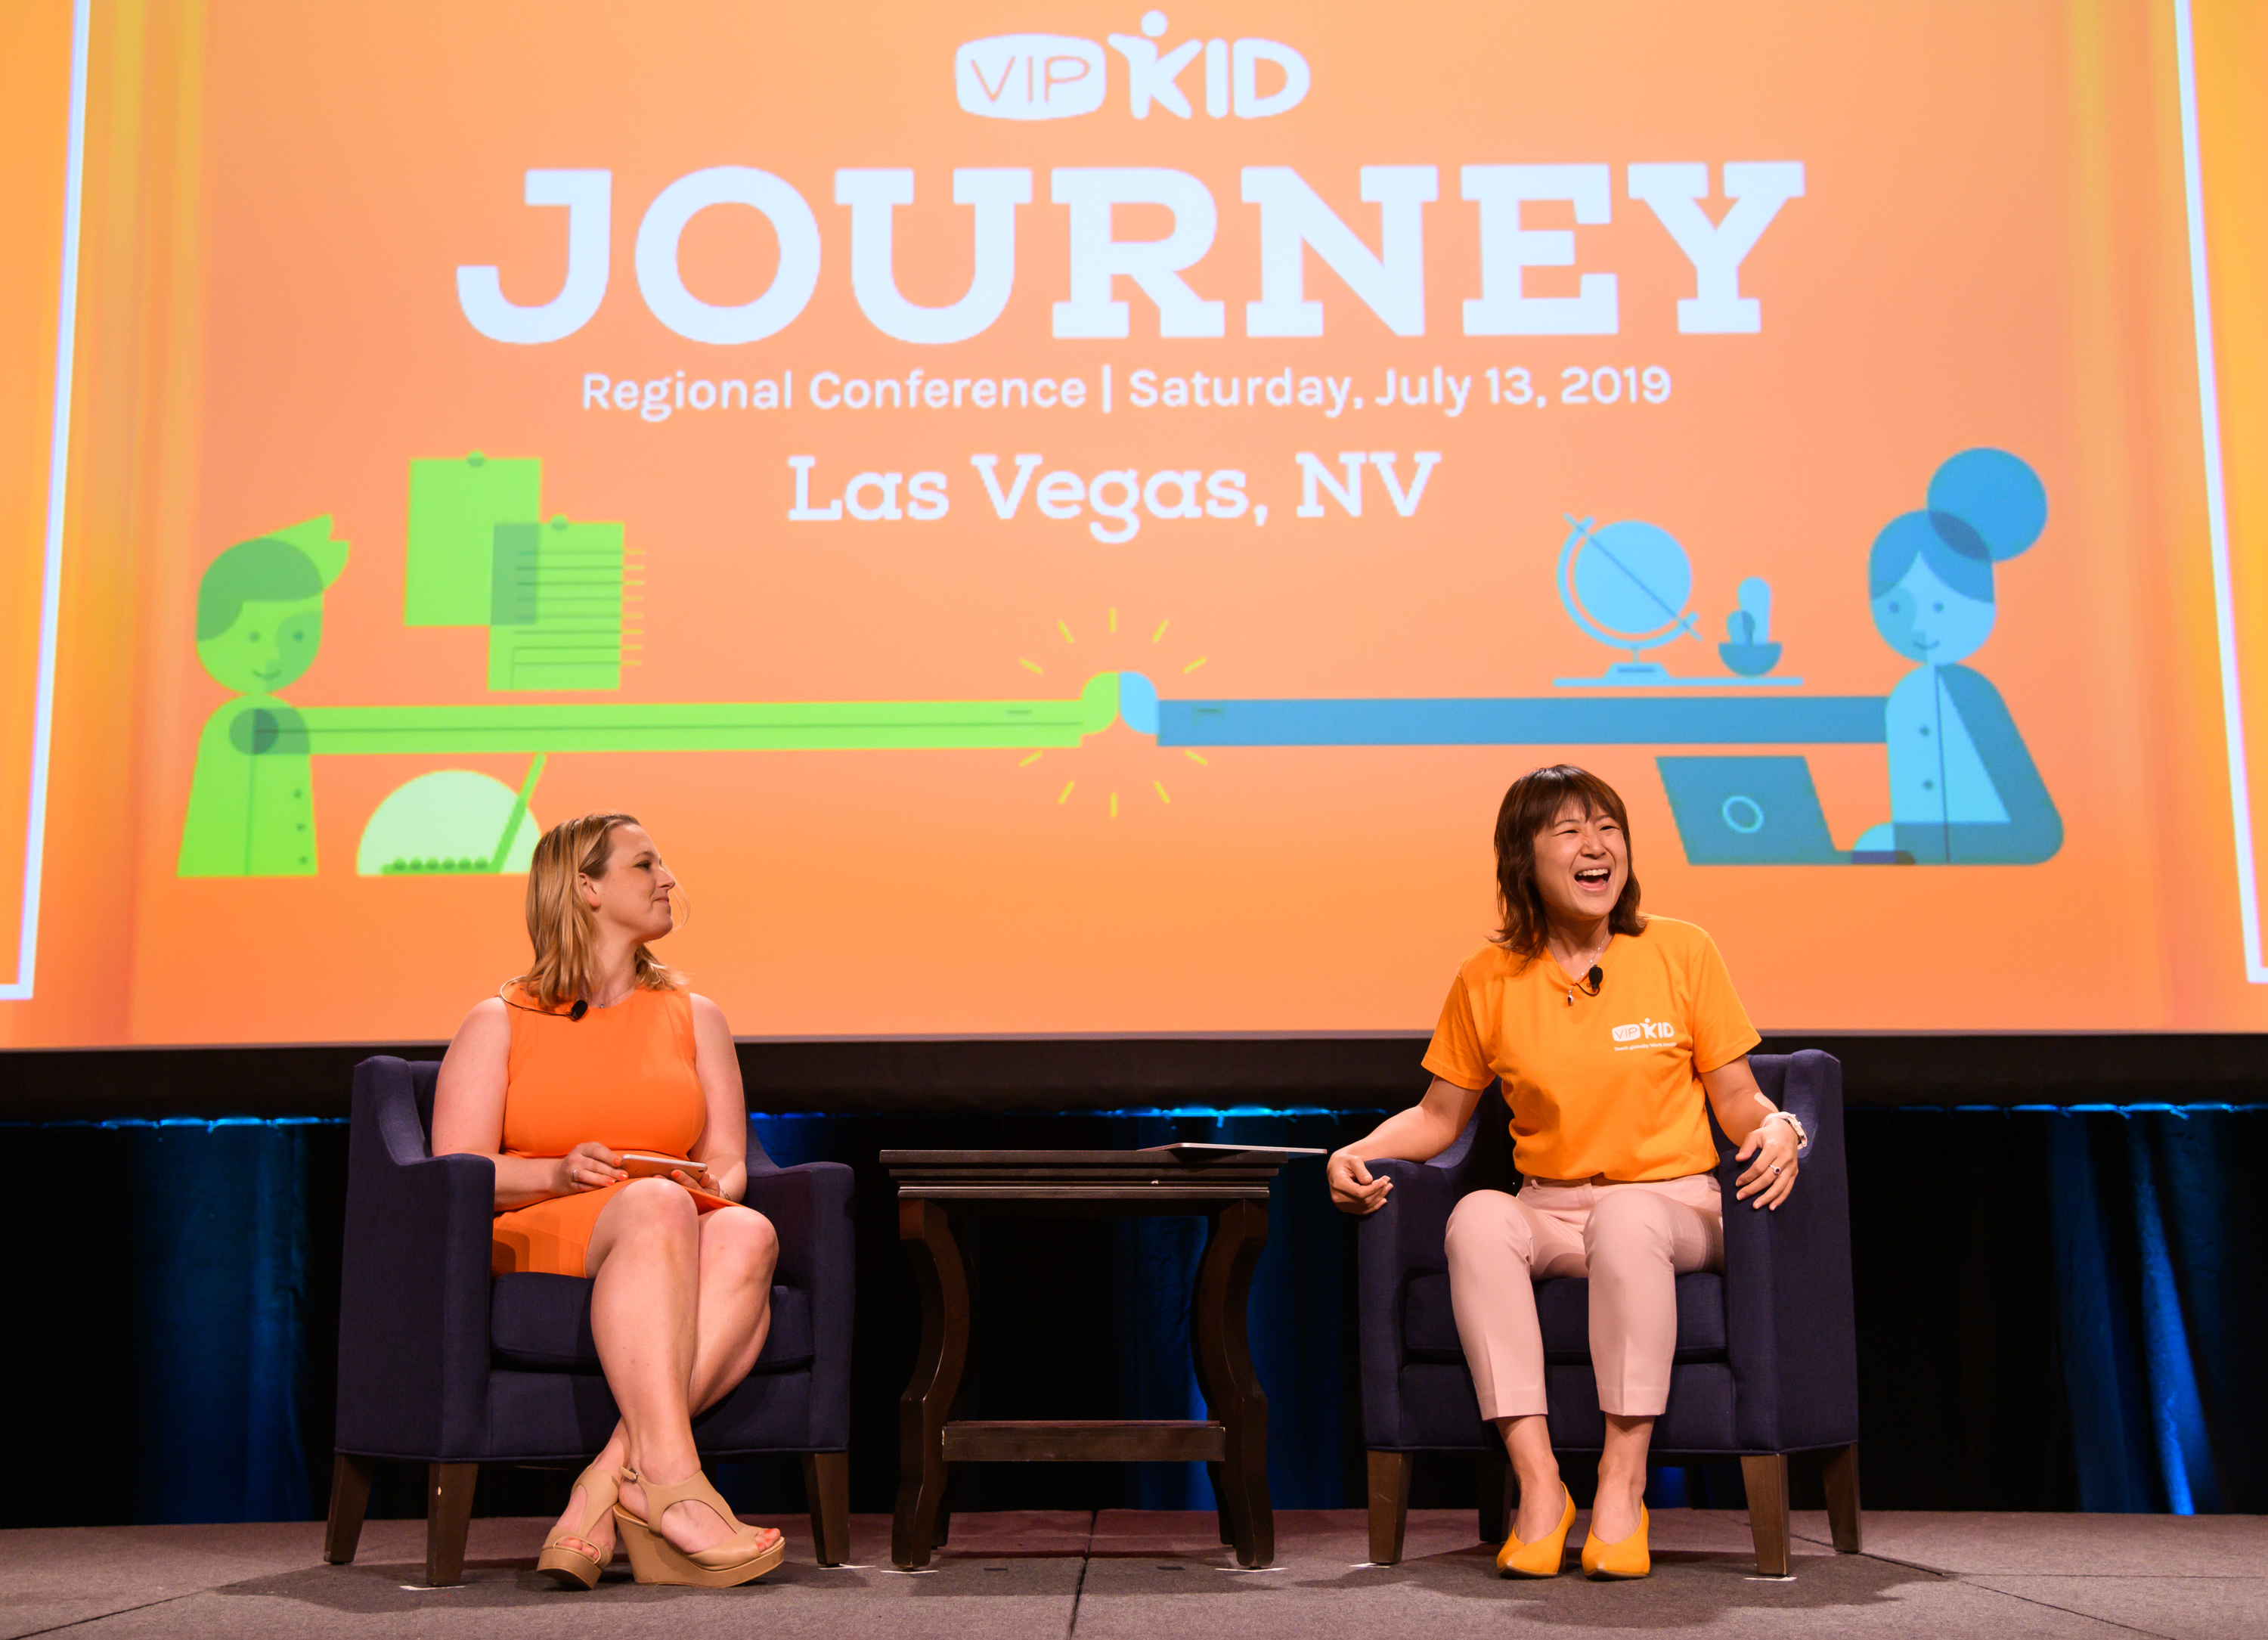 The regional teacher conference was an all-day gathering of 500 online English teachers. (Courtesy VIPKid/Grant Miller Photography)